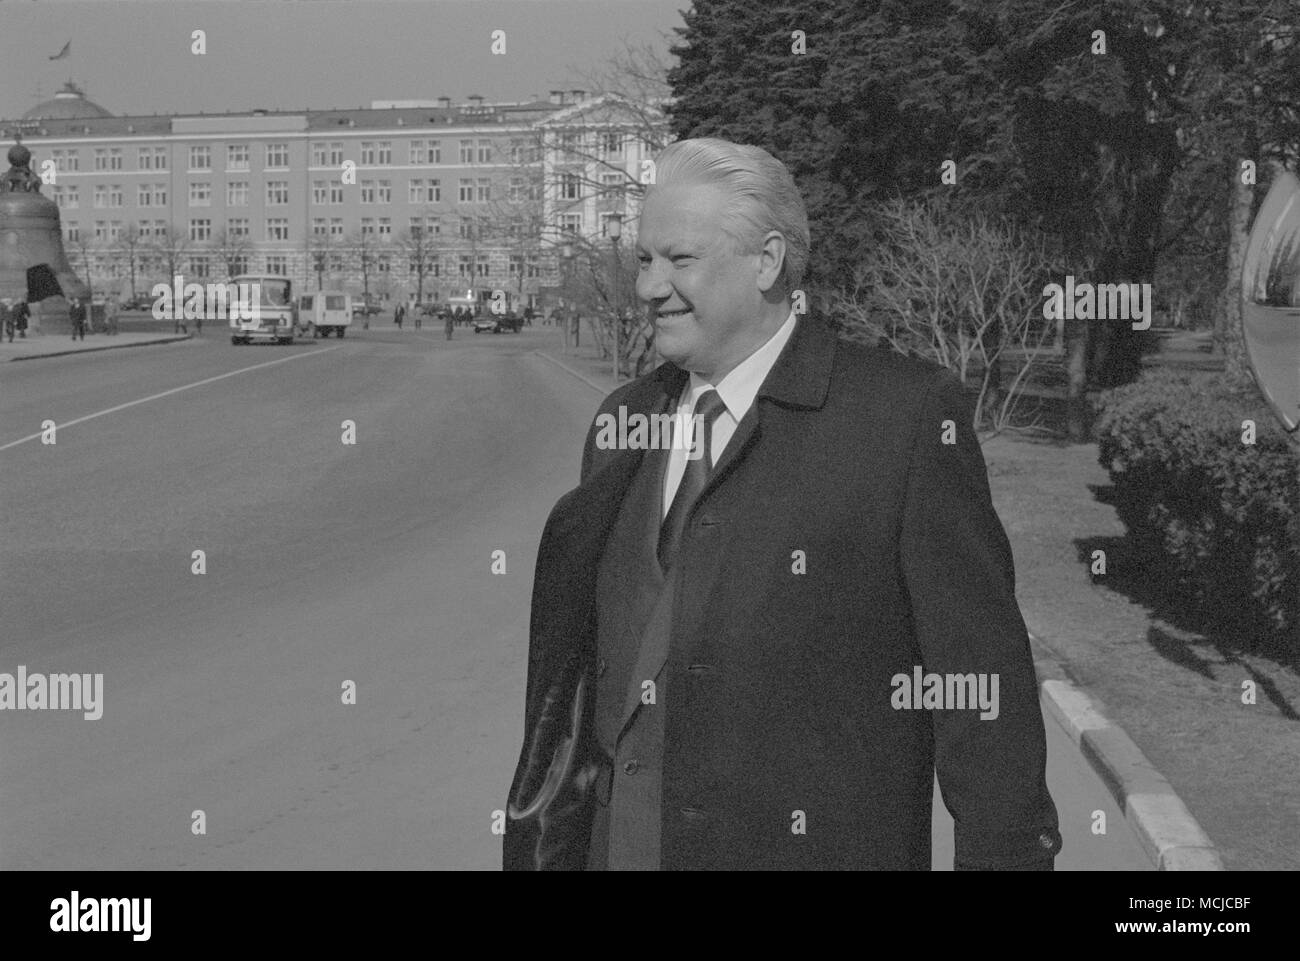 Moscow, USSR - March 28, 1991: Chairman of the Presidium of the Supreme Soviet of the Russian SFSR Boris Nikolayevich Yeltsin walks outdoors in Kremlin. - Stock Image